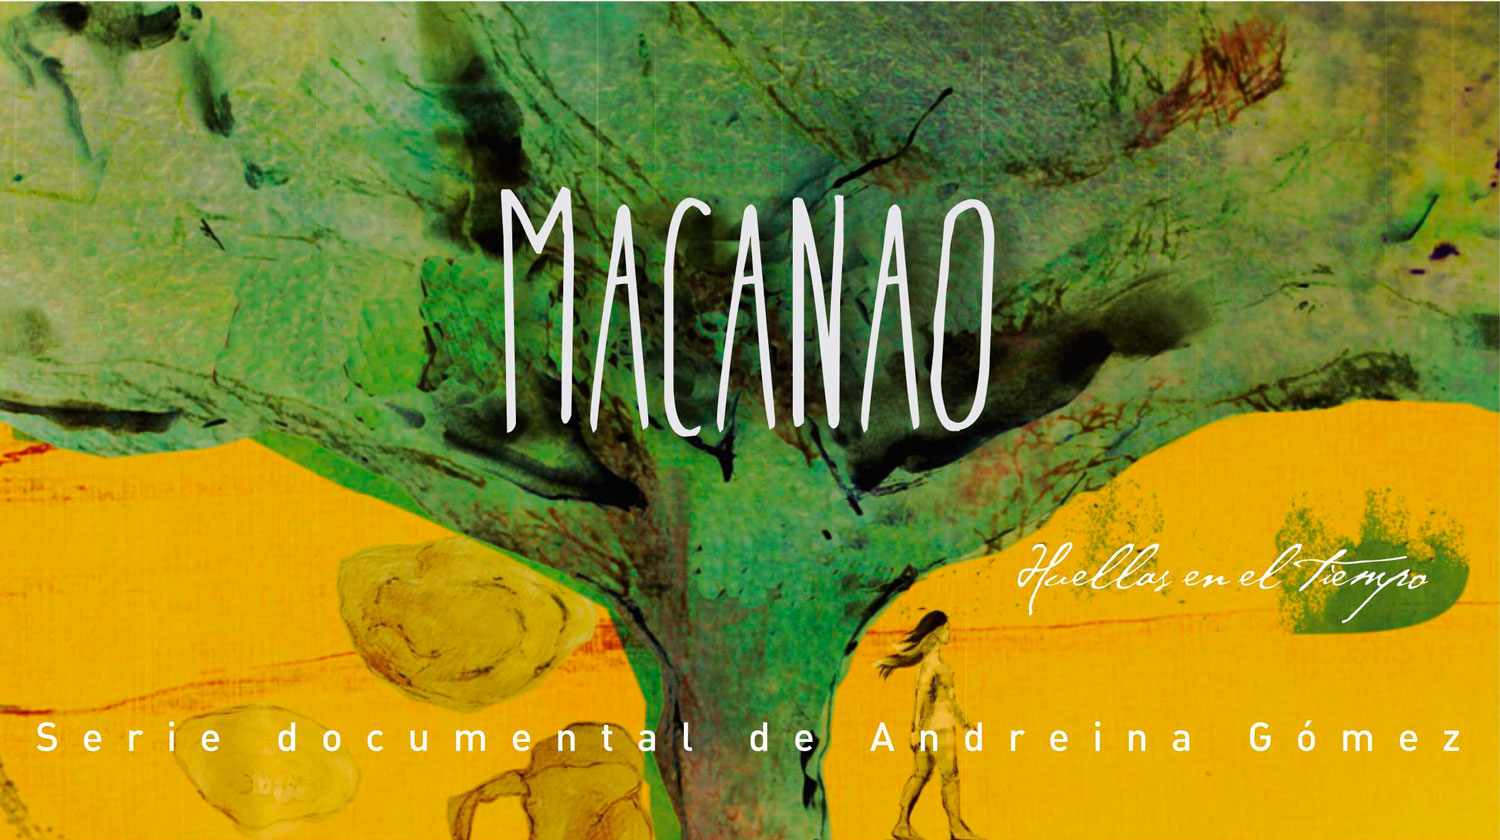 Macanao, footprints in time </br></br> Documentary Tv series by Andreina Gómez